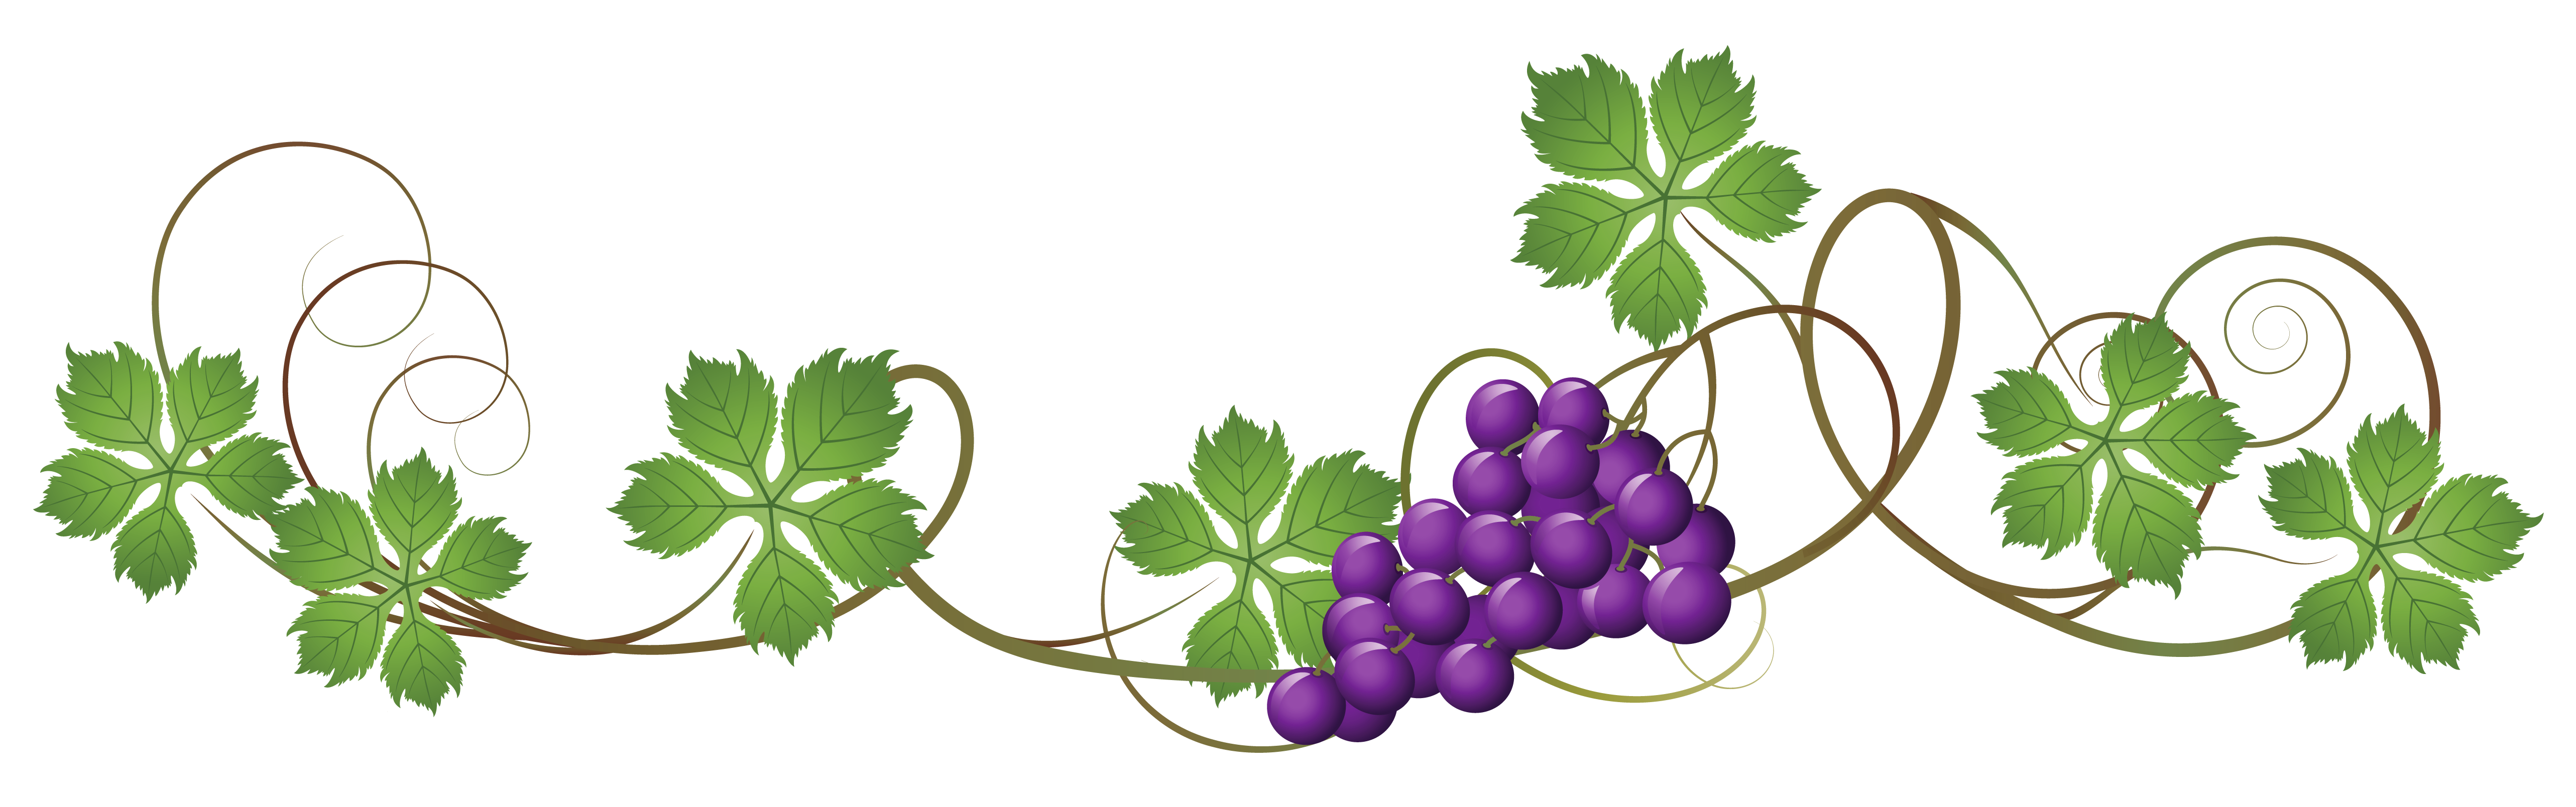 Grapes clipart happy. Vine decoration png picture